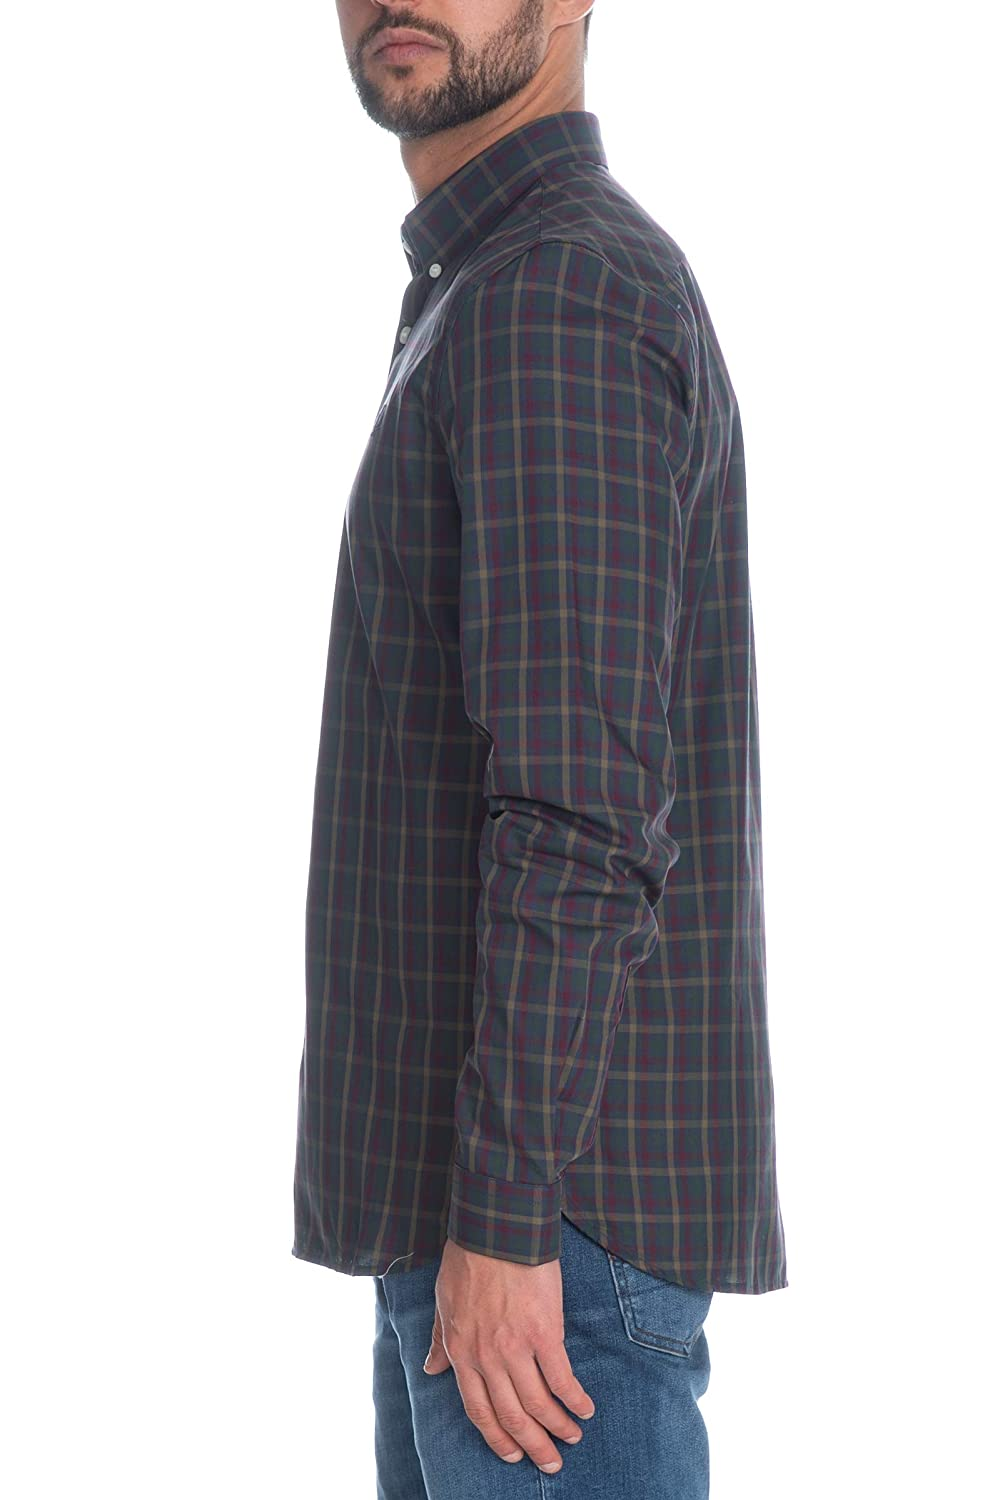 0d7b3af51 Fred Perry Men's Twill Checked Shirt in Dark Airforce: Amazon.co.uk:  Clothing